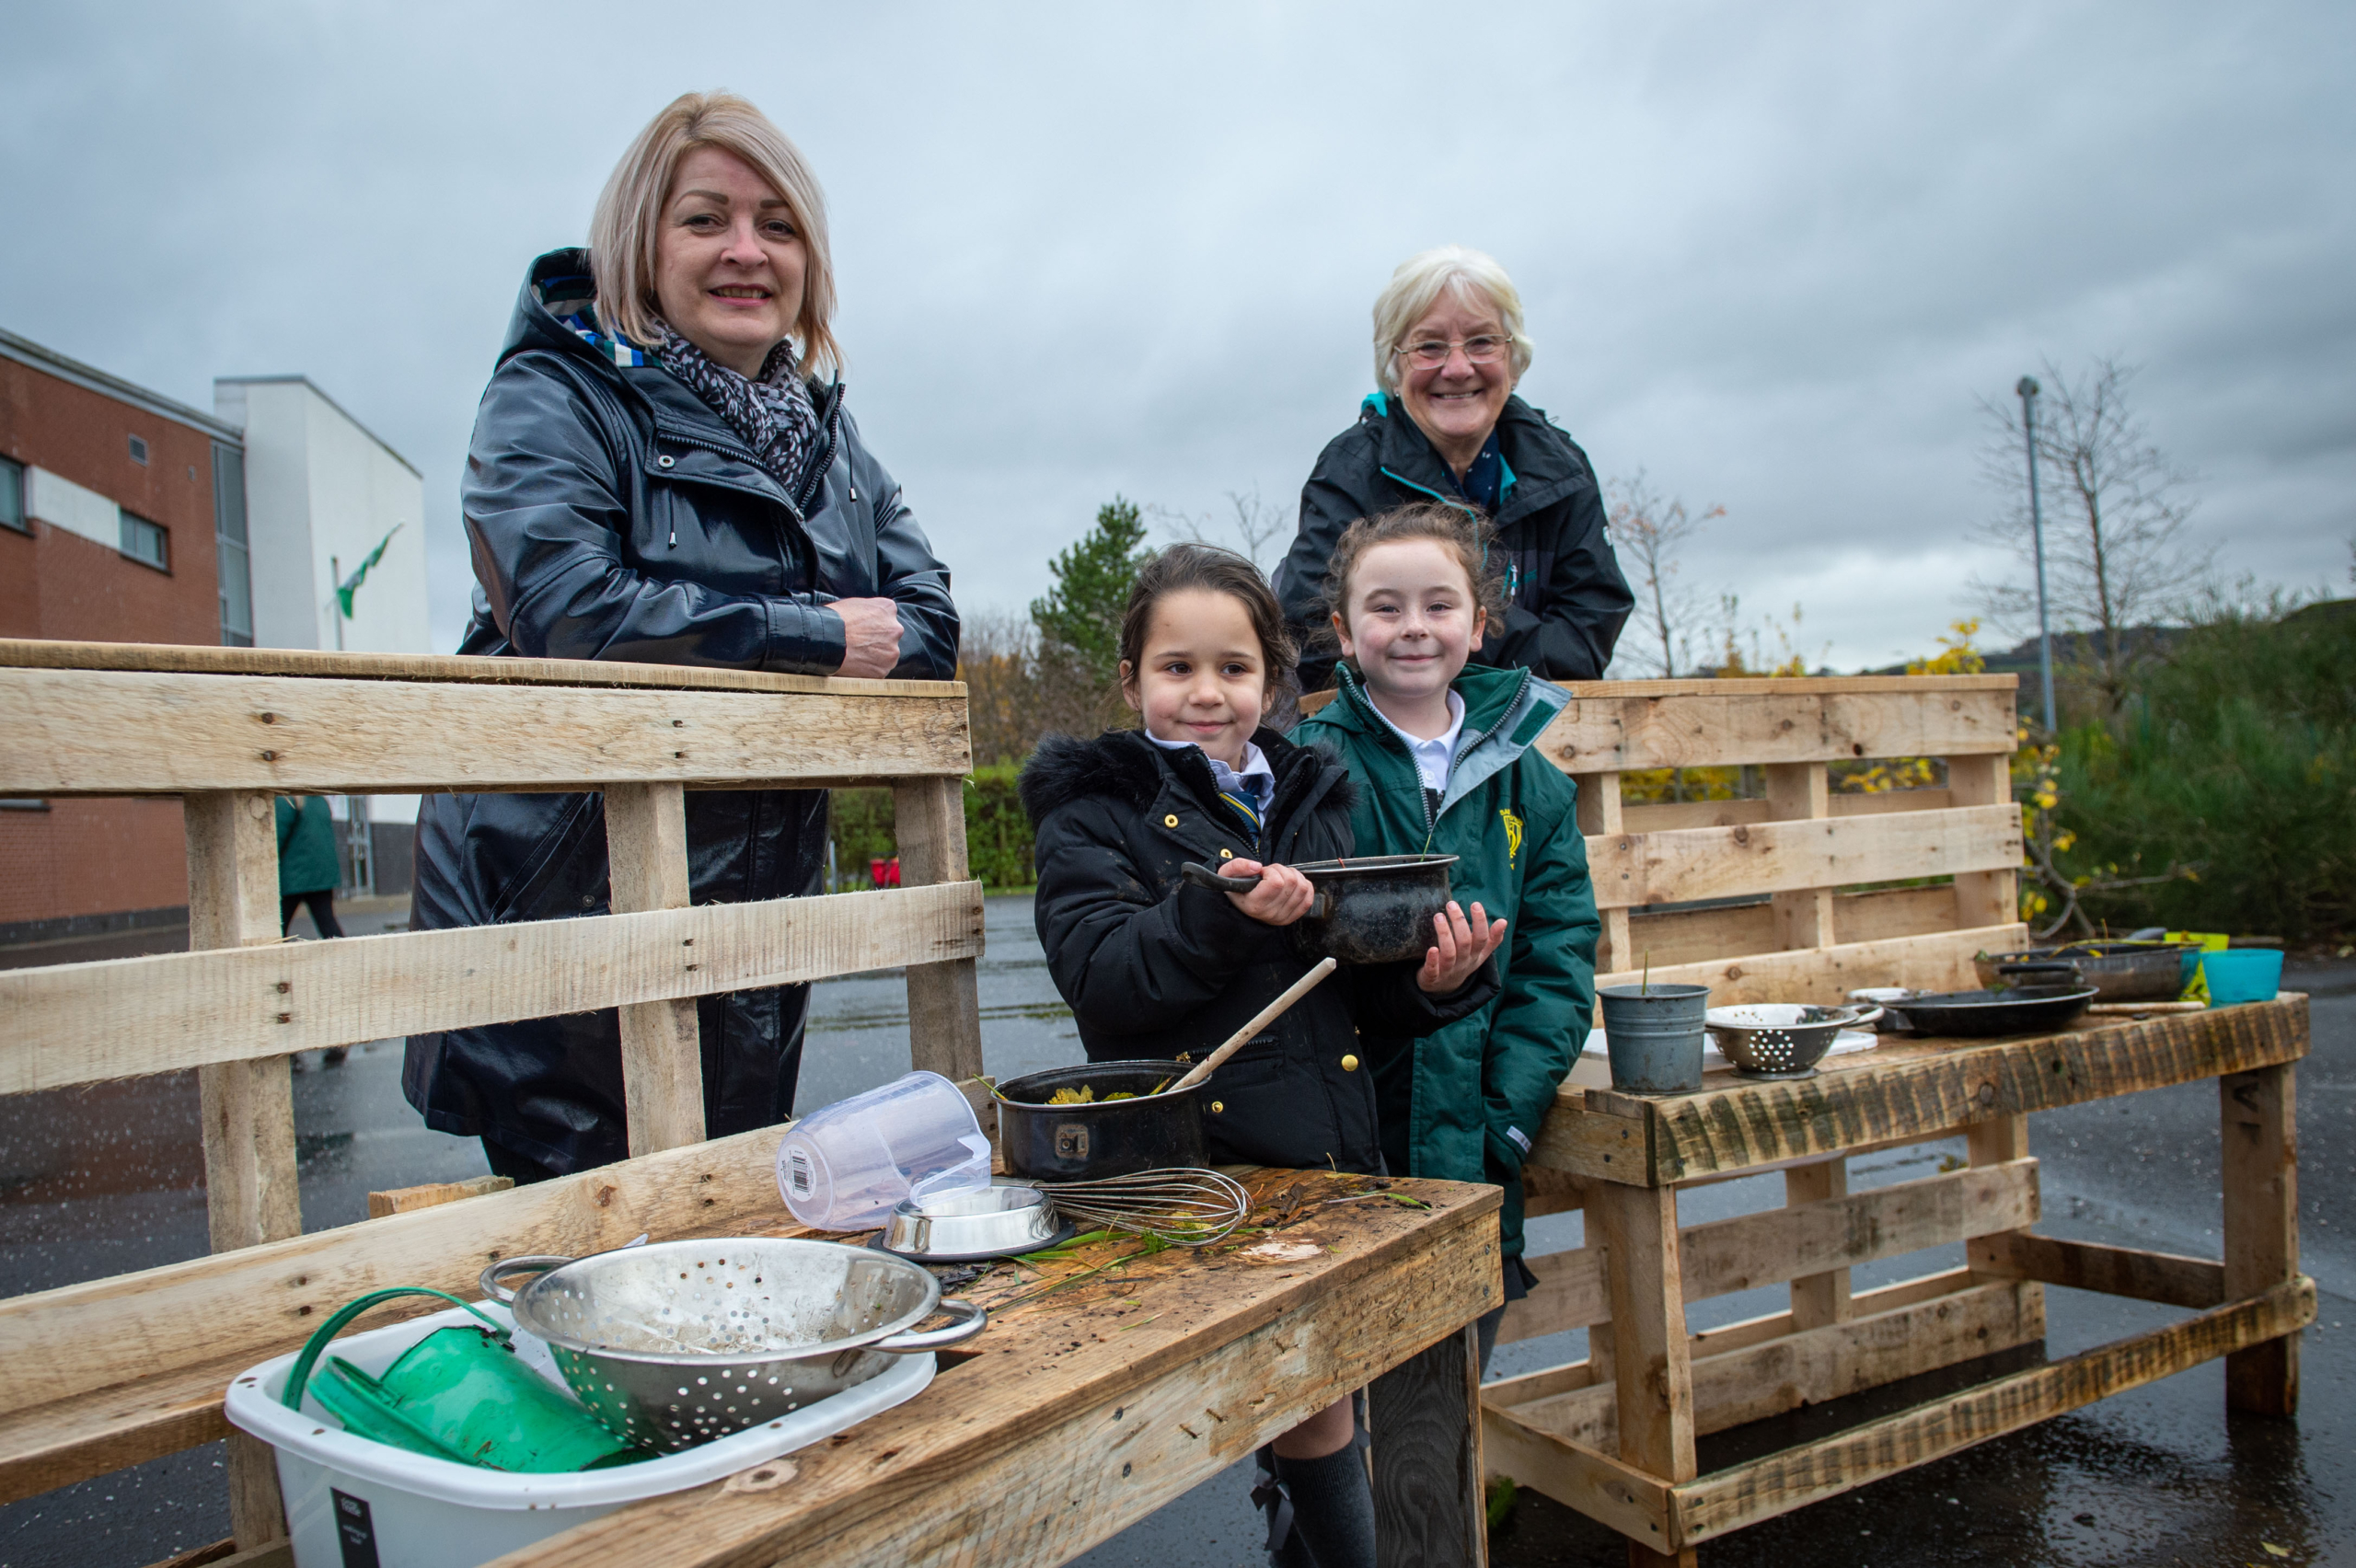 Gail Scoular, Cllr Cathy McEwan, and a Cochrane Castle Primary & St David's Primary pupil